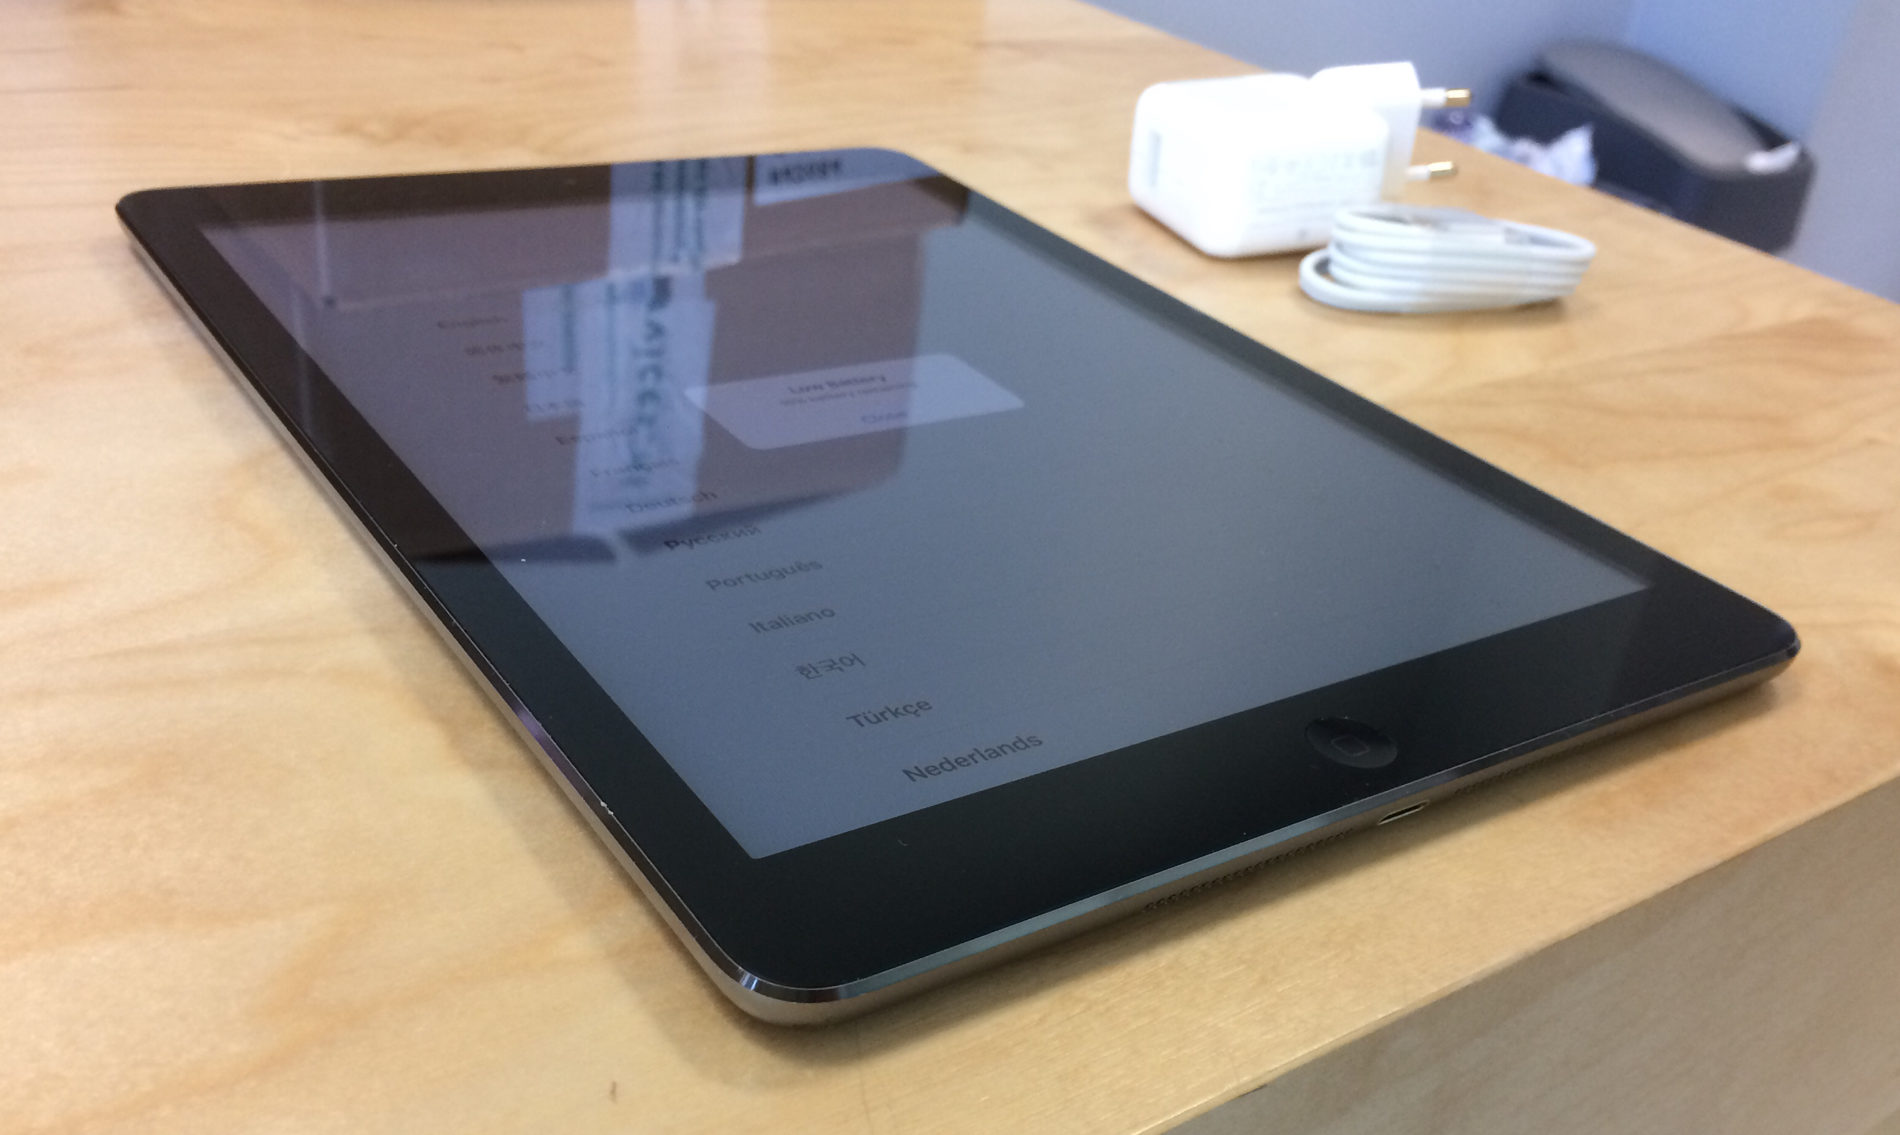 iPad Air (Wi-Fi + 4G), 64 GB, Space Gray, imagen 3